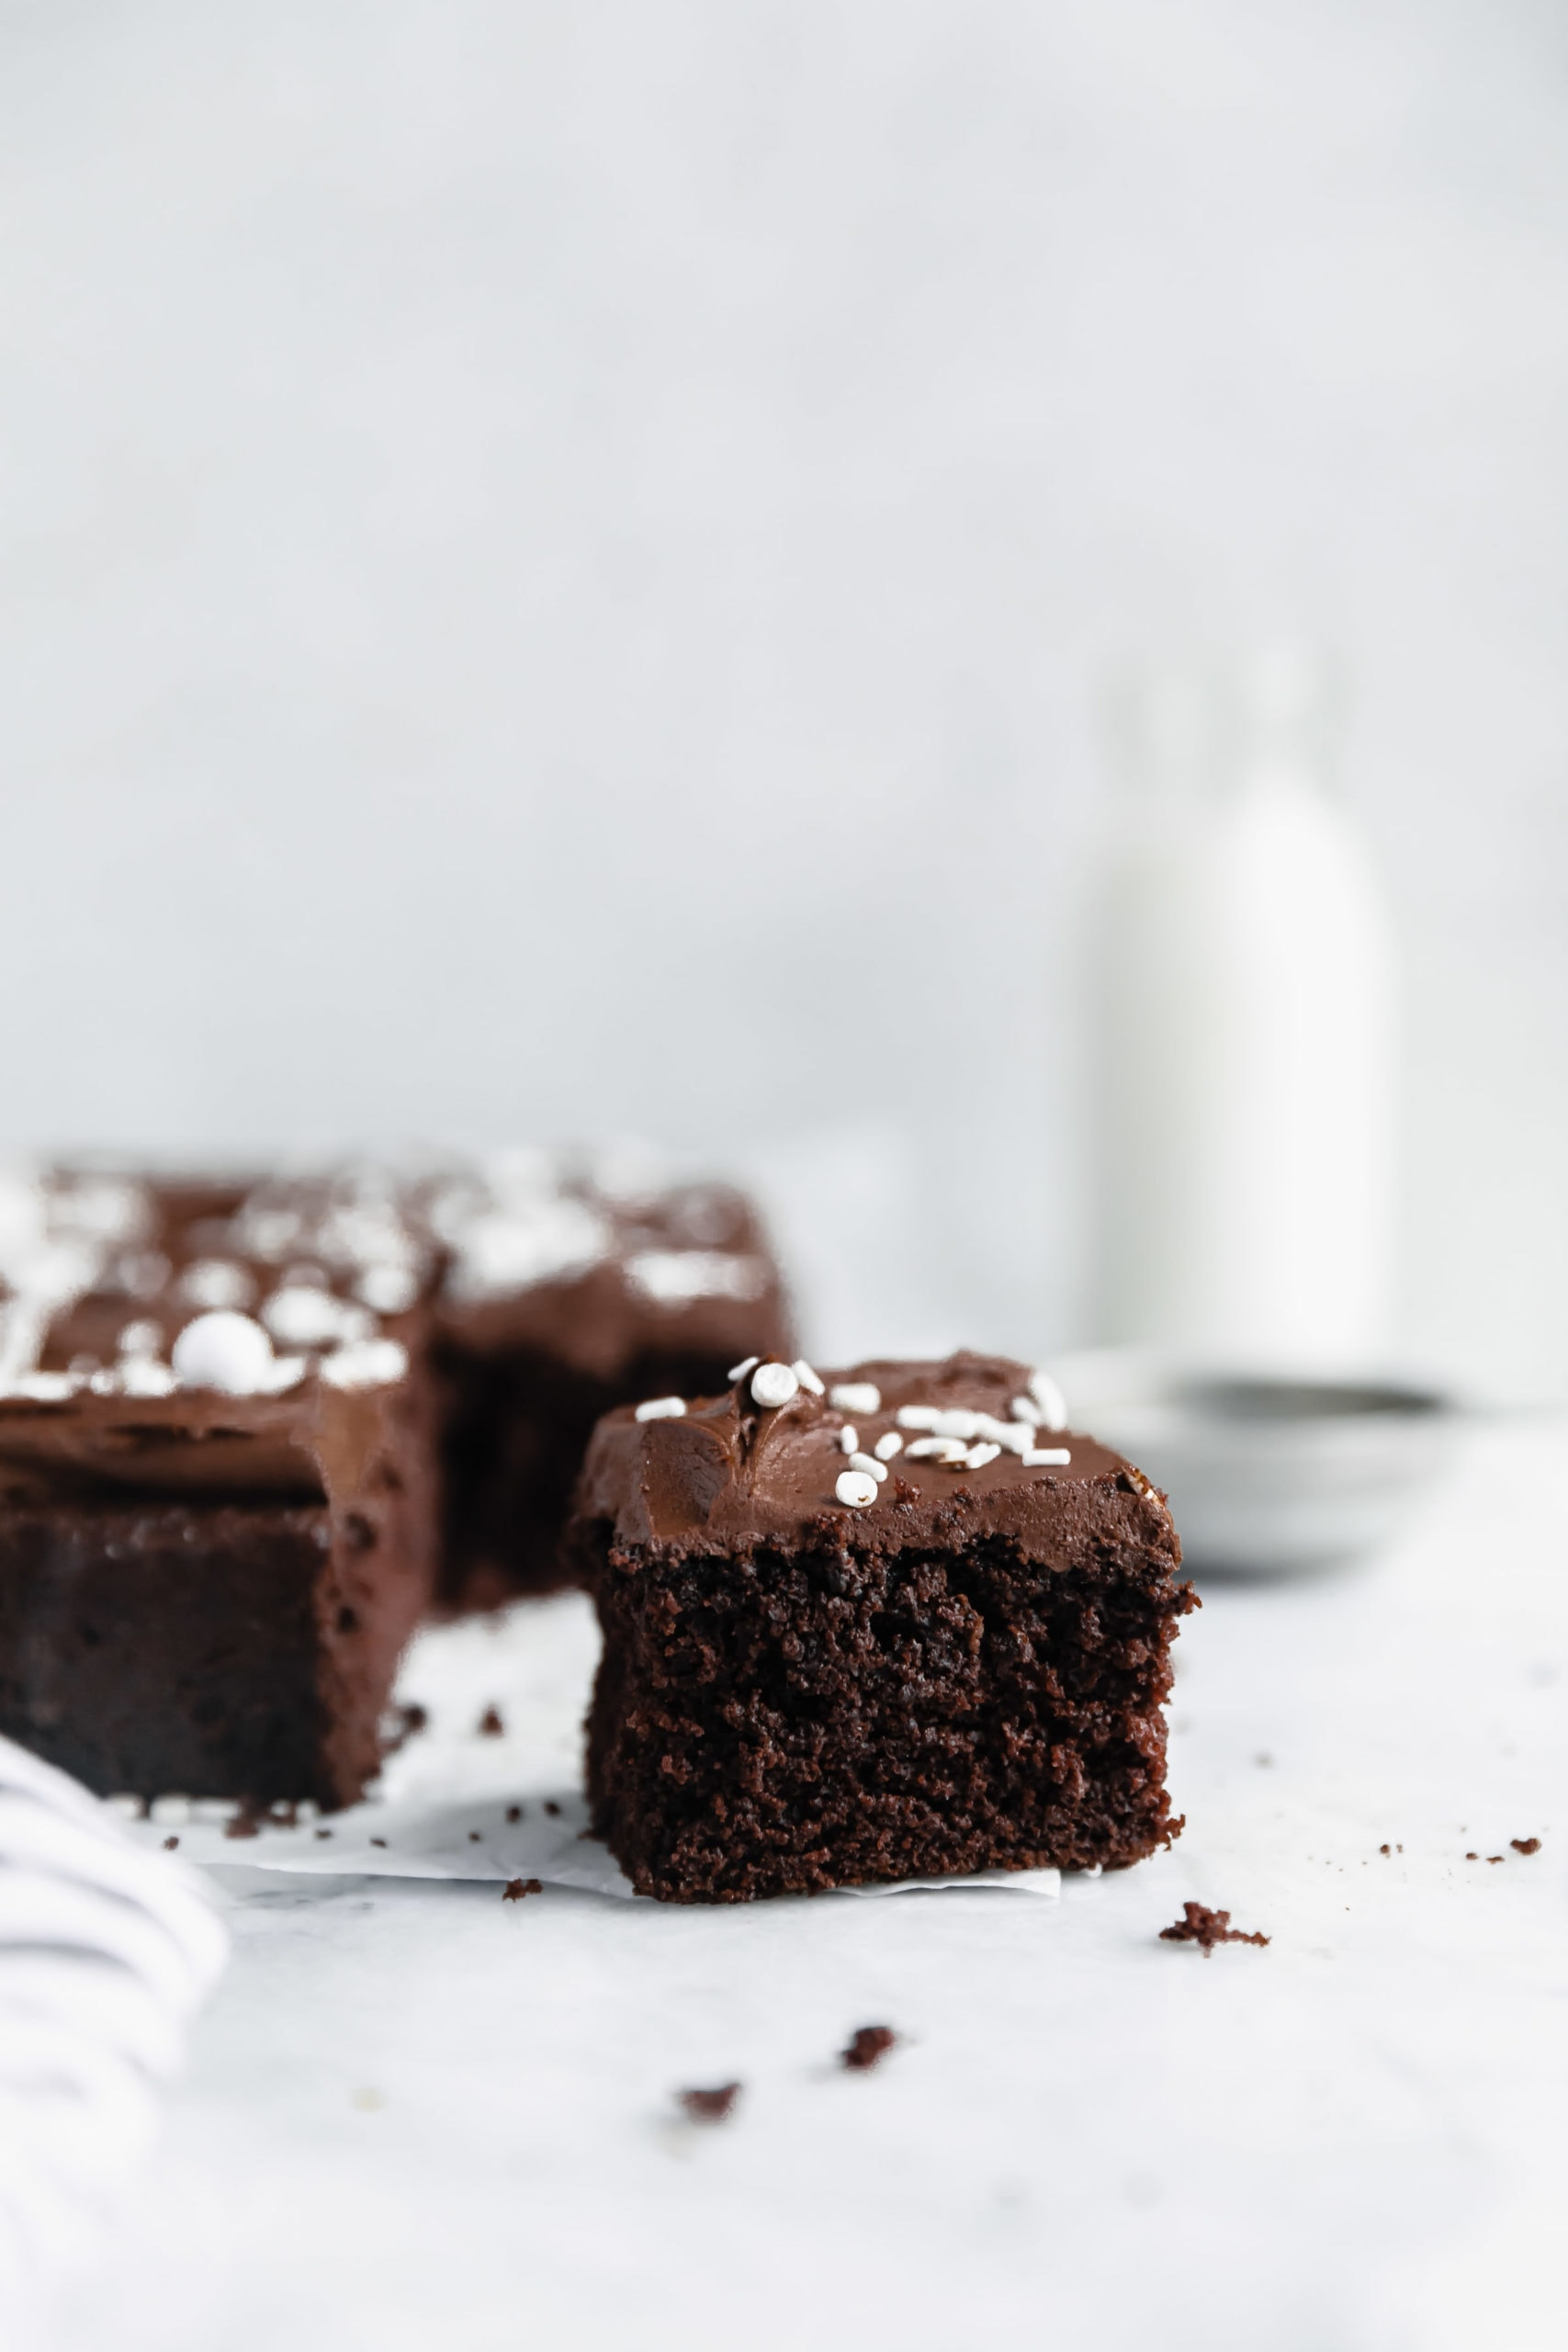 Introducing the best gluten free chocolate cake you'll ever eat. Moist, fudgy, cakey, and oh so chocolatey, this easy gfree chocolate cake recipe is the only one you'll ever need!